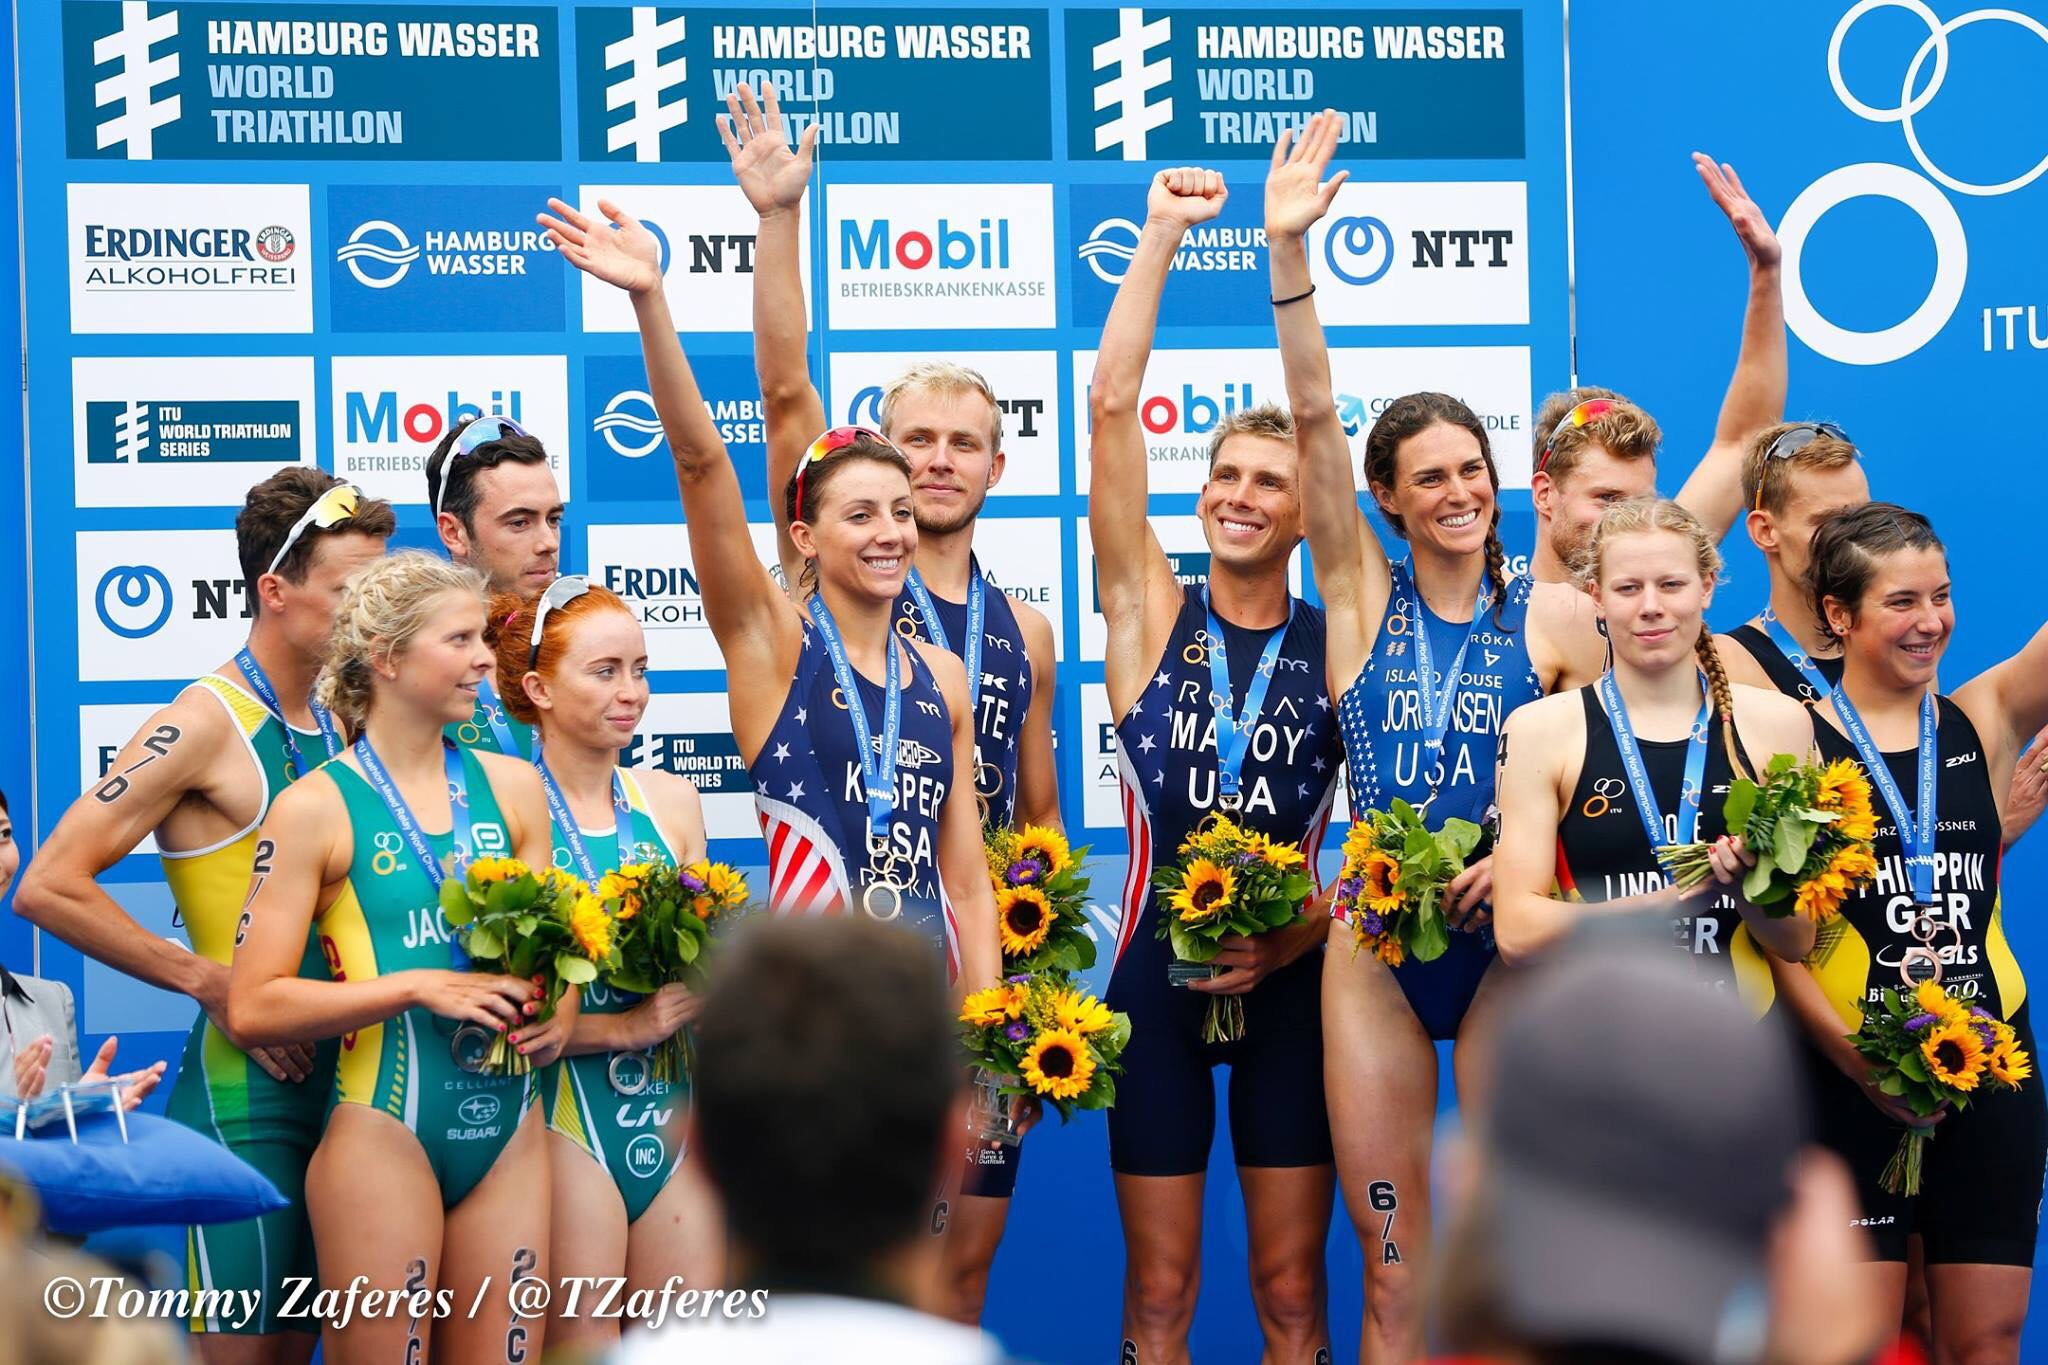 Mixed Team Relay World Champions. Photo credit: Tommy Zaferes